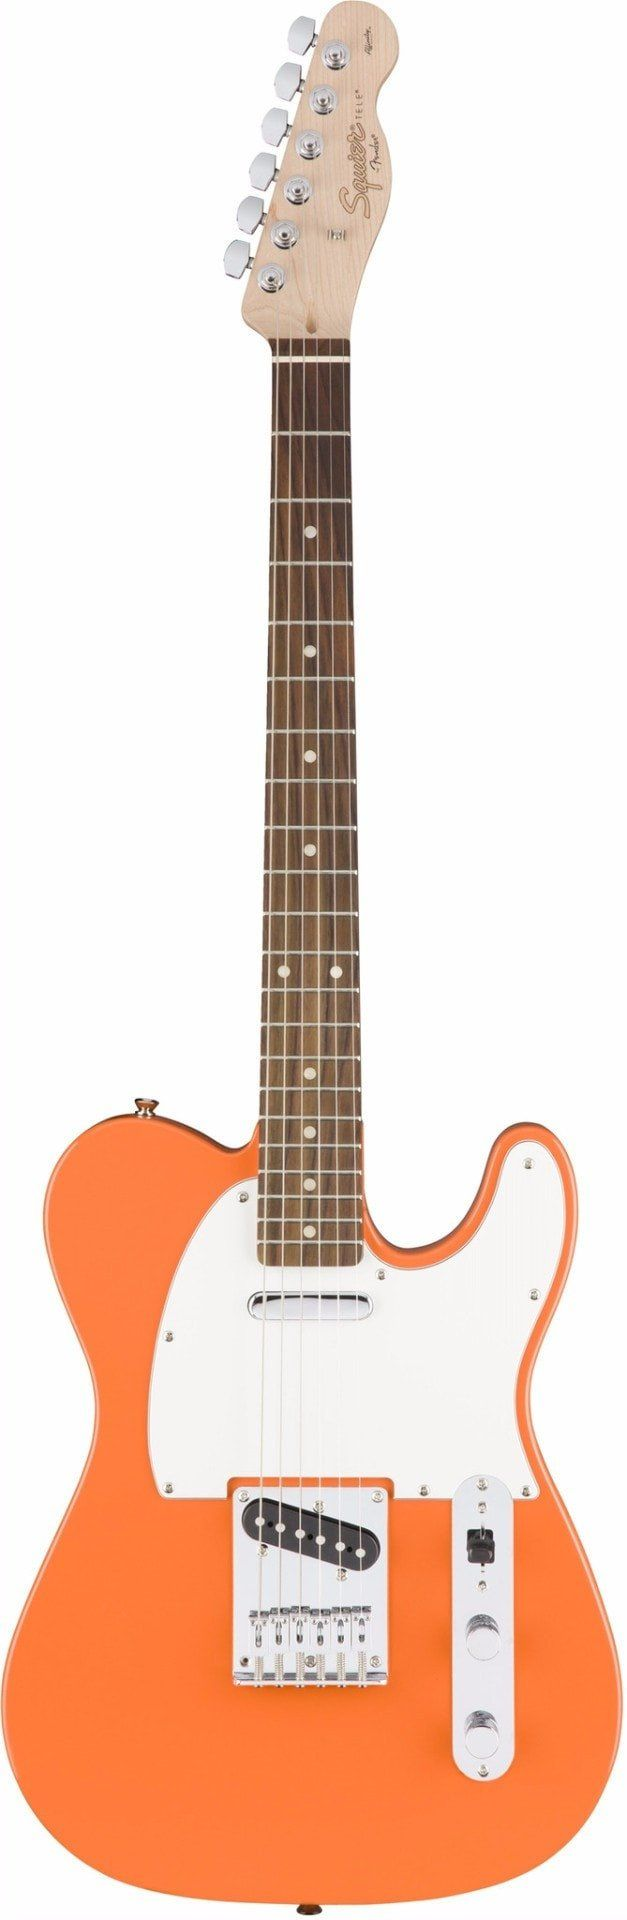 small resolution of a5c6ae423ce1618731e09317b9017974 the 25 best telecaster body ideas on pinterest fender squier squier affinity squier affinity telecaster wiring diagram